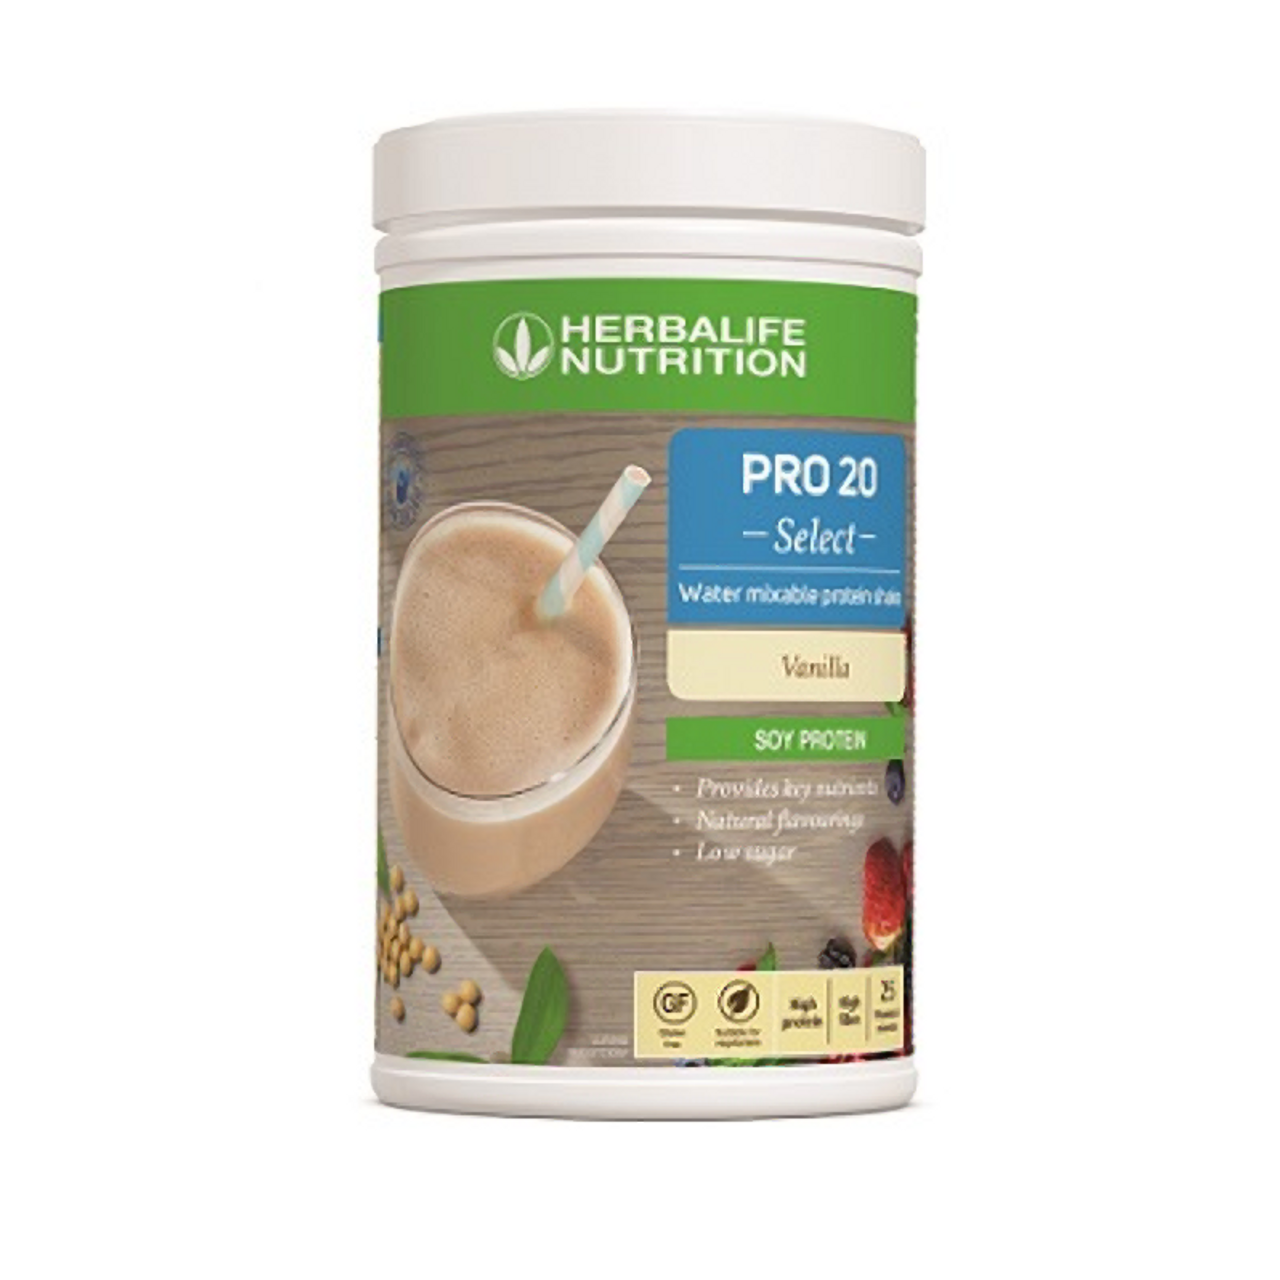 Herbalife - PRO 20 Select - Water Mixable Protein Shake (630g)